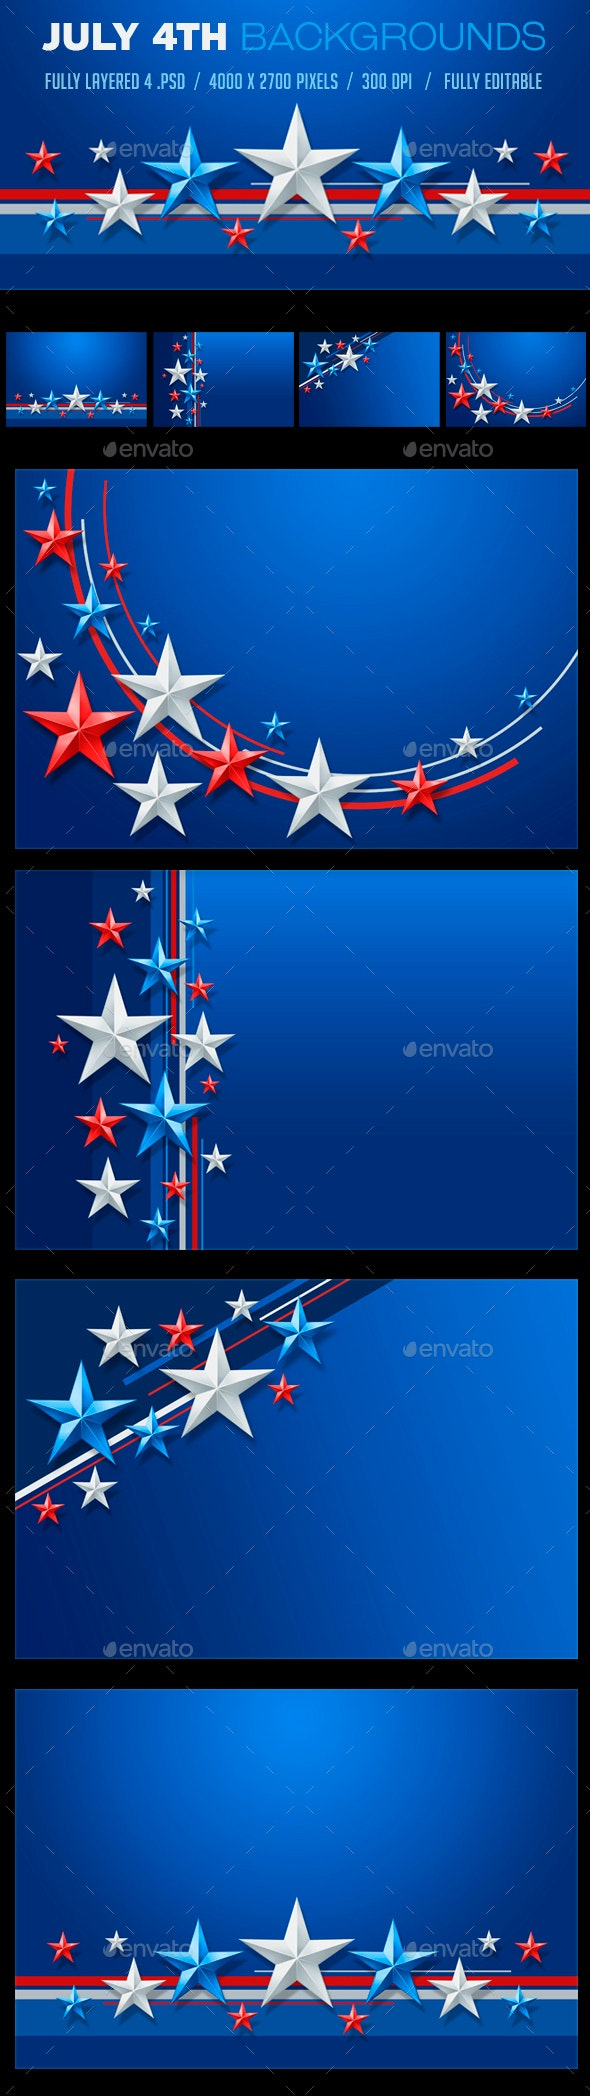 July 4th / 4th of July Backgrounds set - Backgrounds Graphics